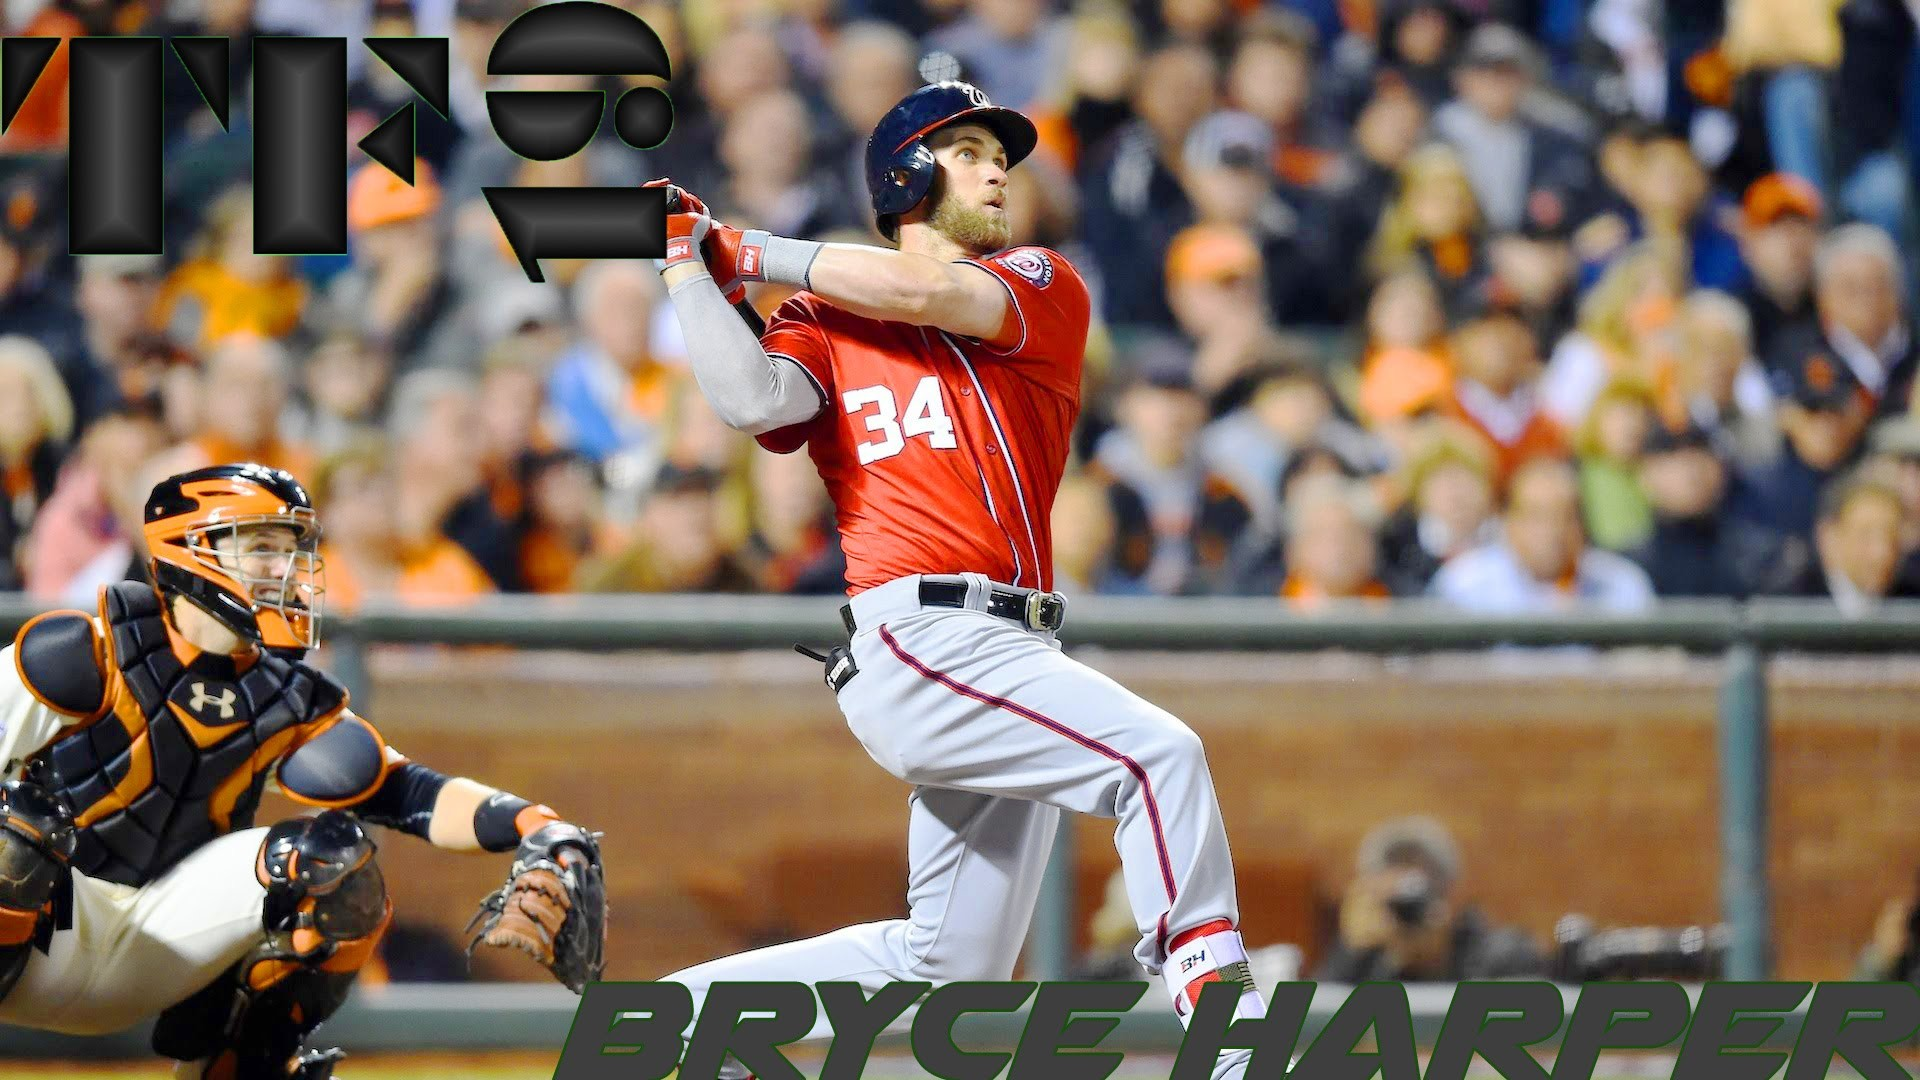 Bryce Harper 2015 Highlights HD